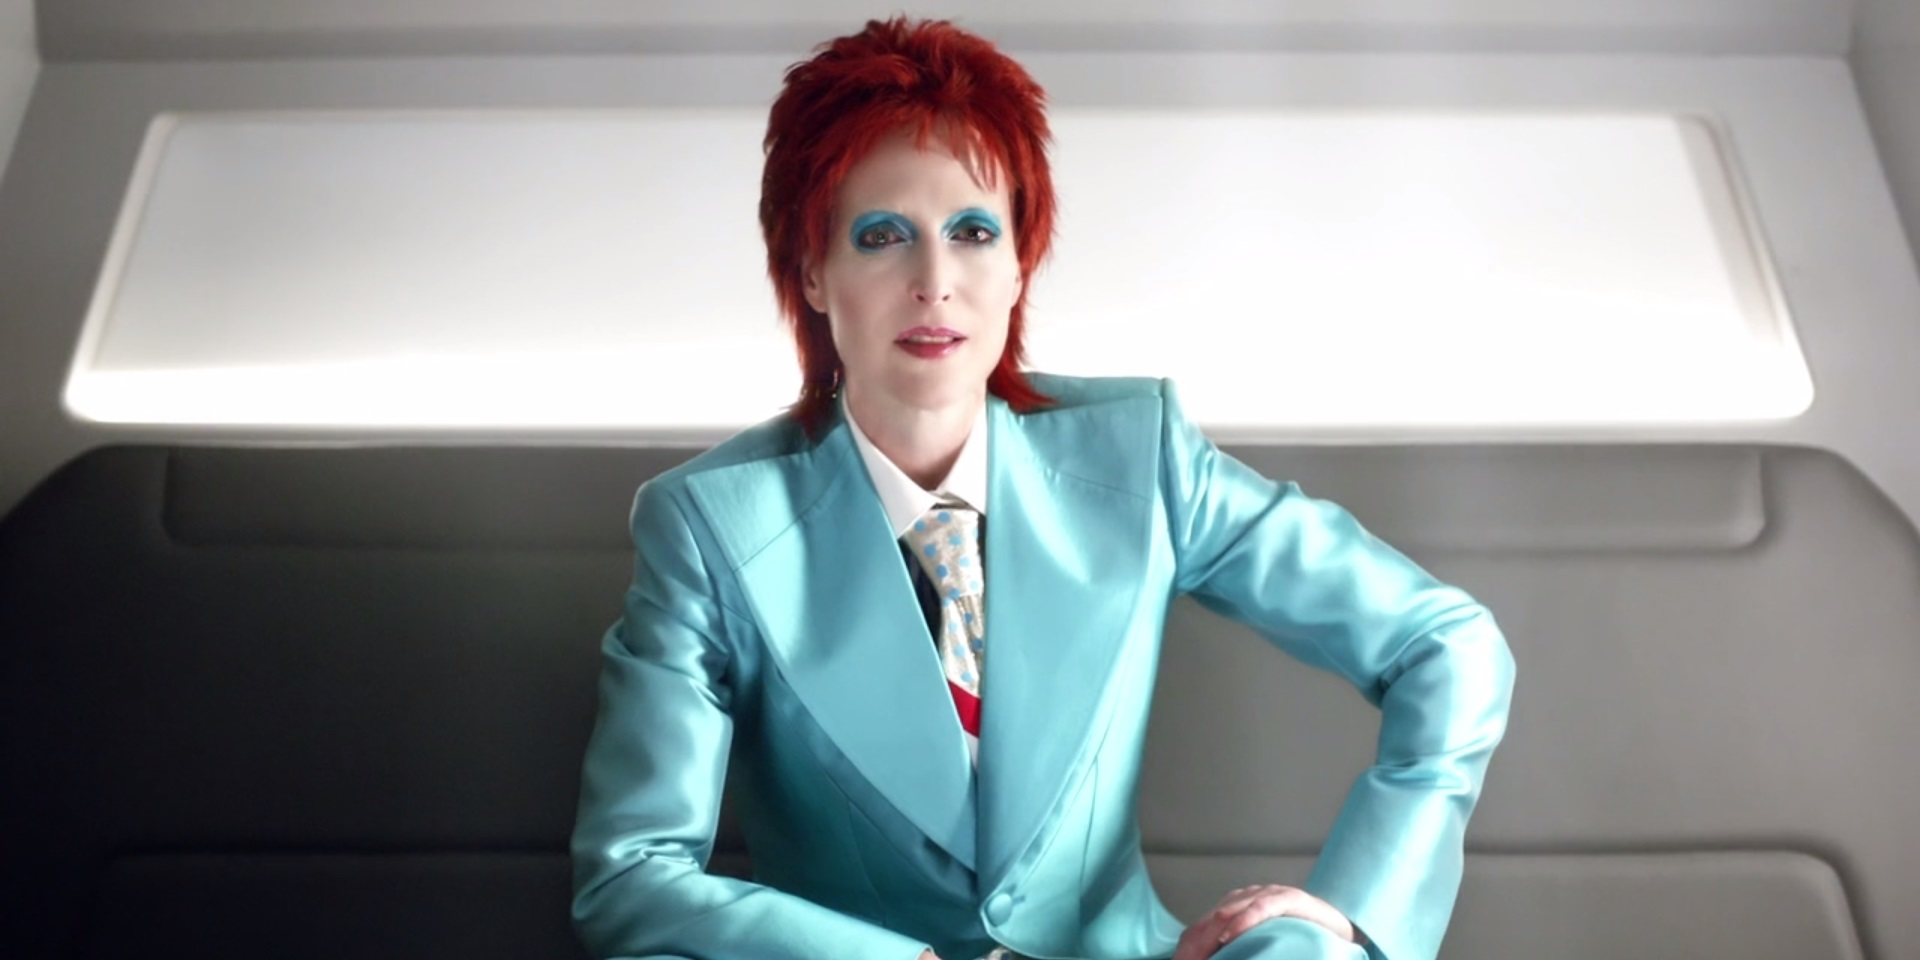 American Gods - Gillian Anderson as Media as David Bowie